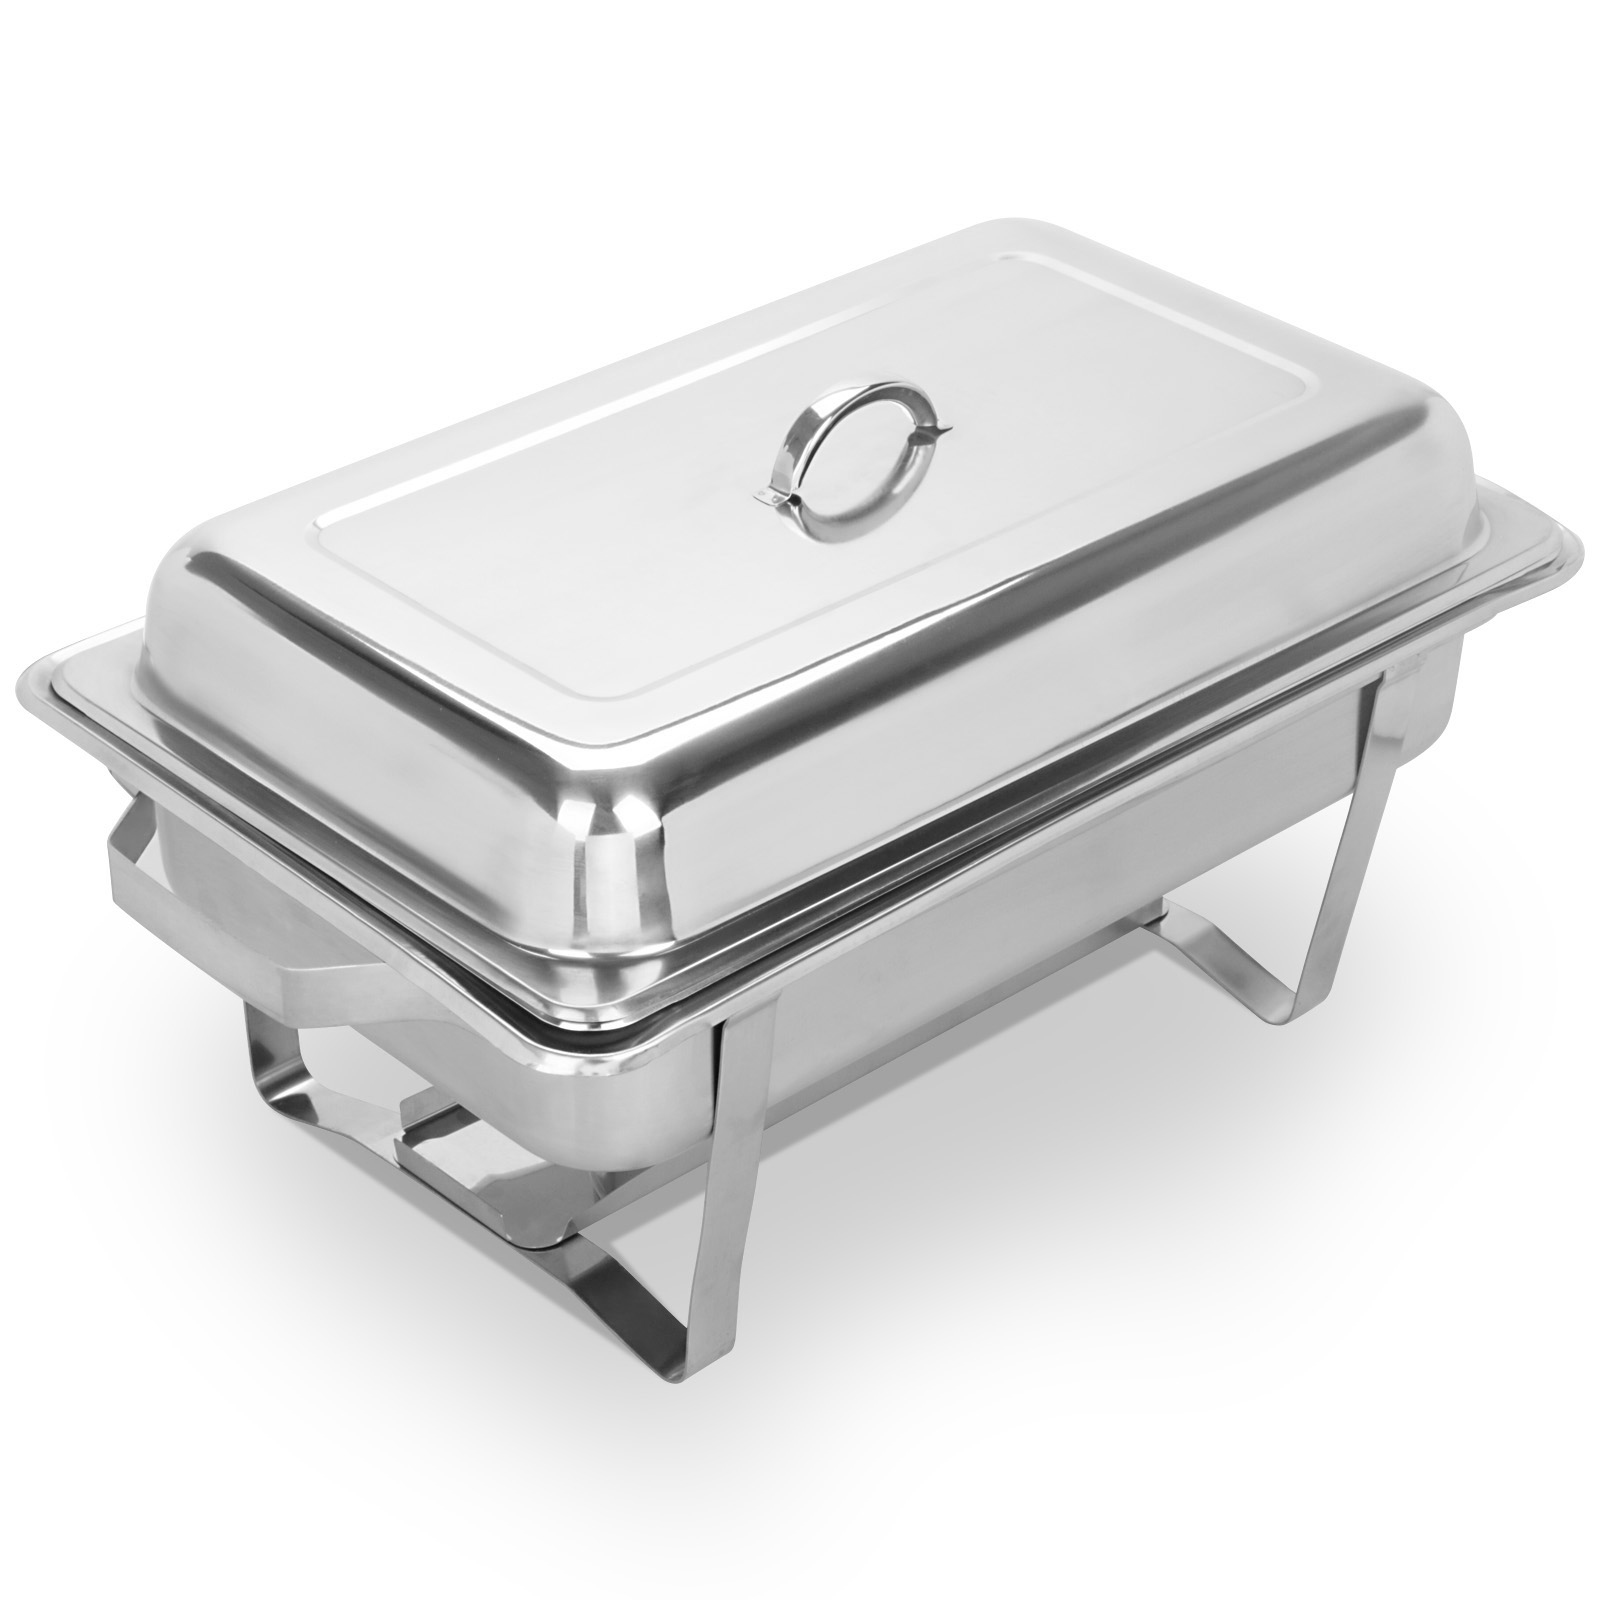 4 pack chafing dish sets buffet catering 9 quart food warmer with tray food pans ebay. Black Bedroom Furniture Sets. Home Design Ideas